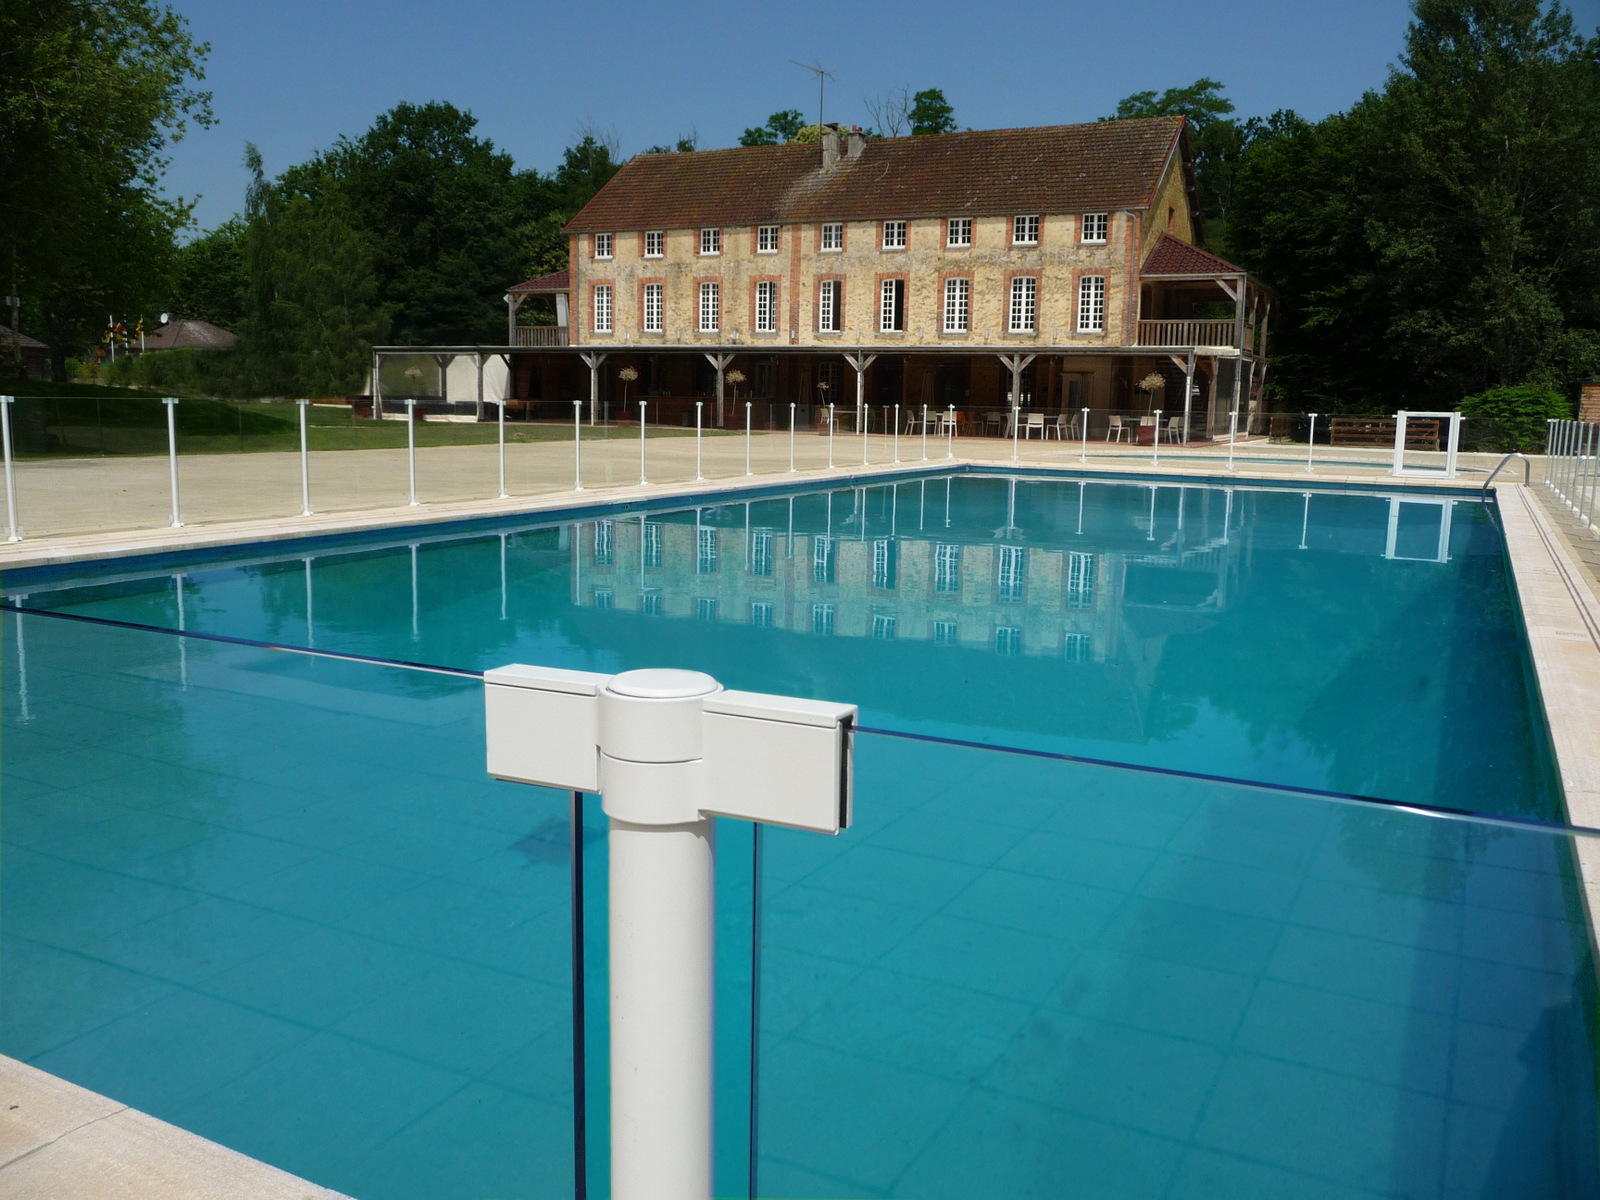 Barri re de piscine en aluminium et protection aluminium for Barriere piscine verre prix